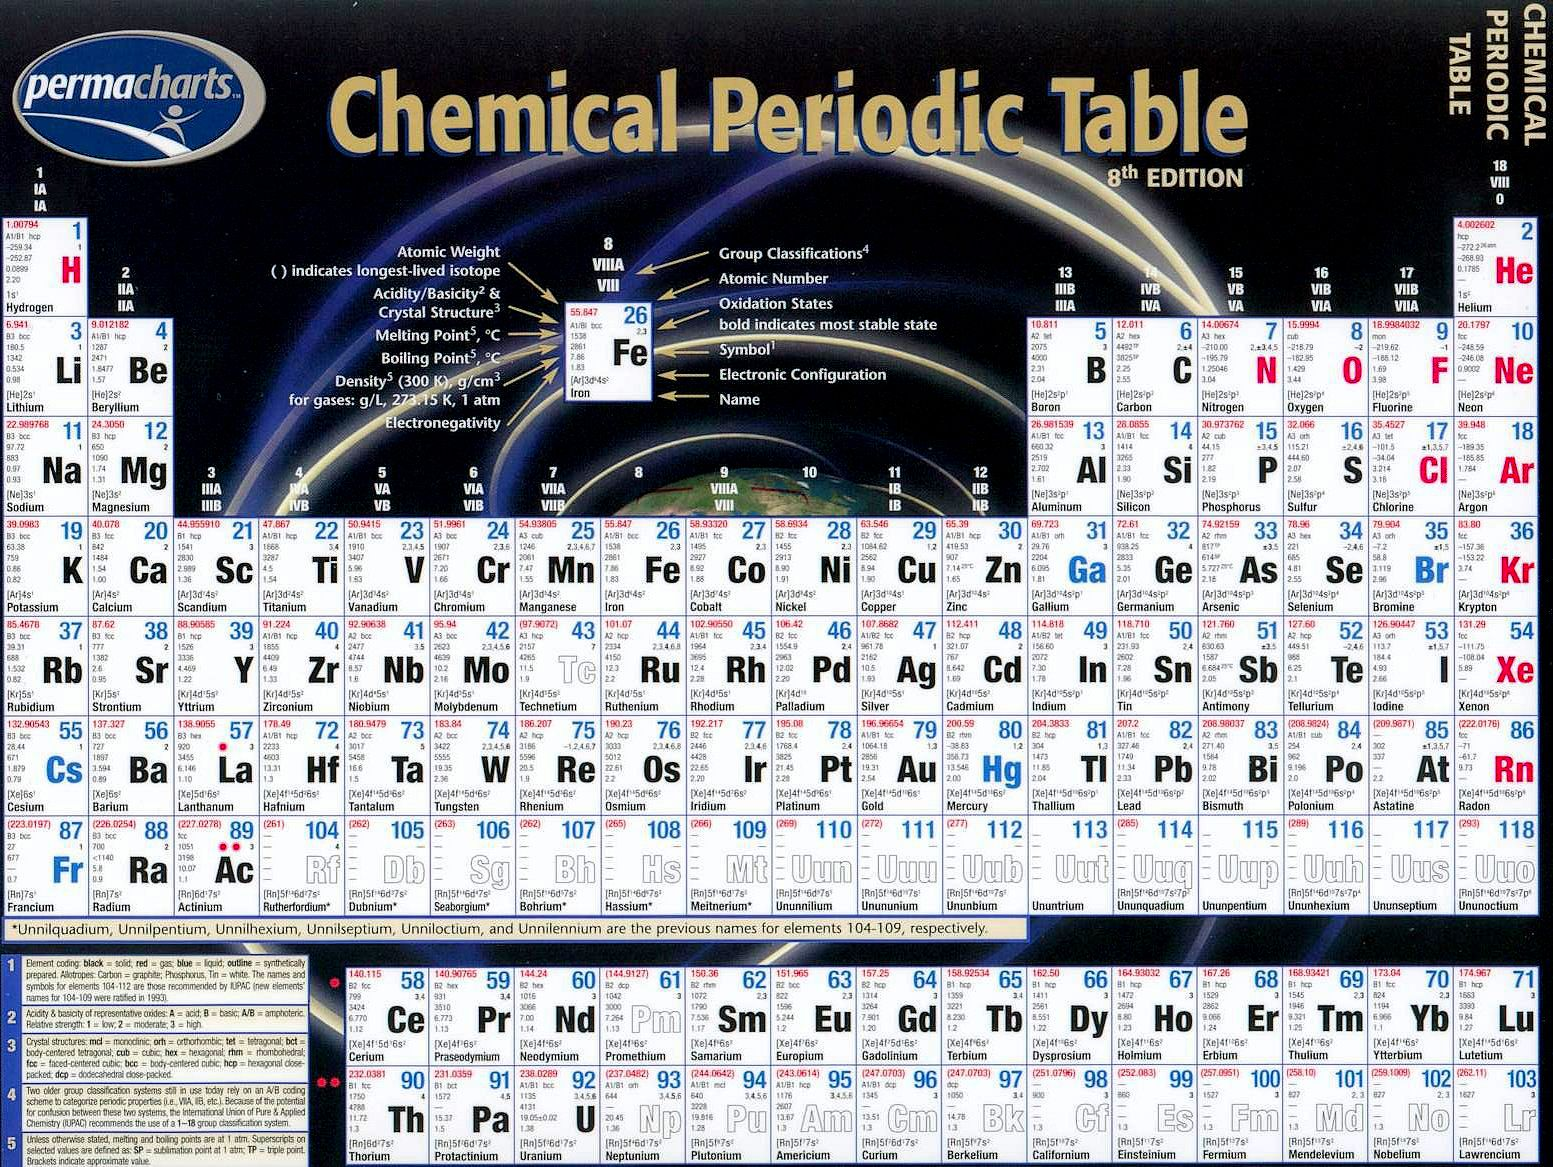 perma charts chemical periodic table 8th edition periodic tables 999b0e9b05735082819326ca80f610ed 365917538447754358 periodic table uses fresh what - Periodic Table Uses